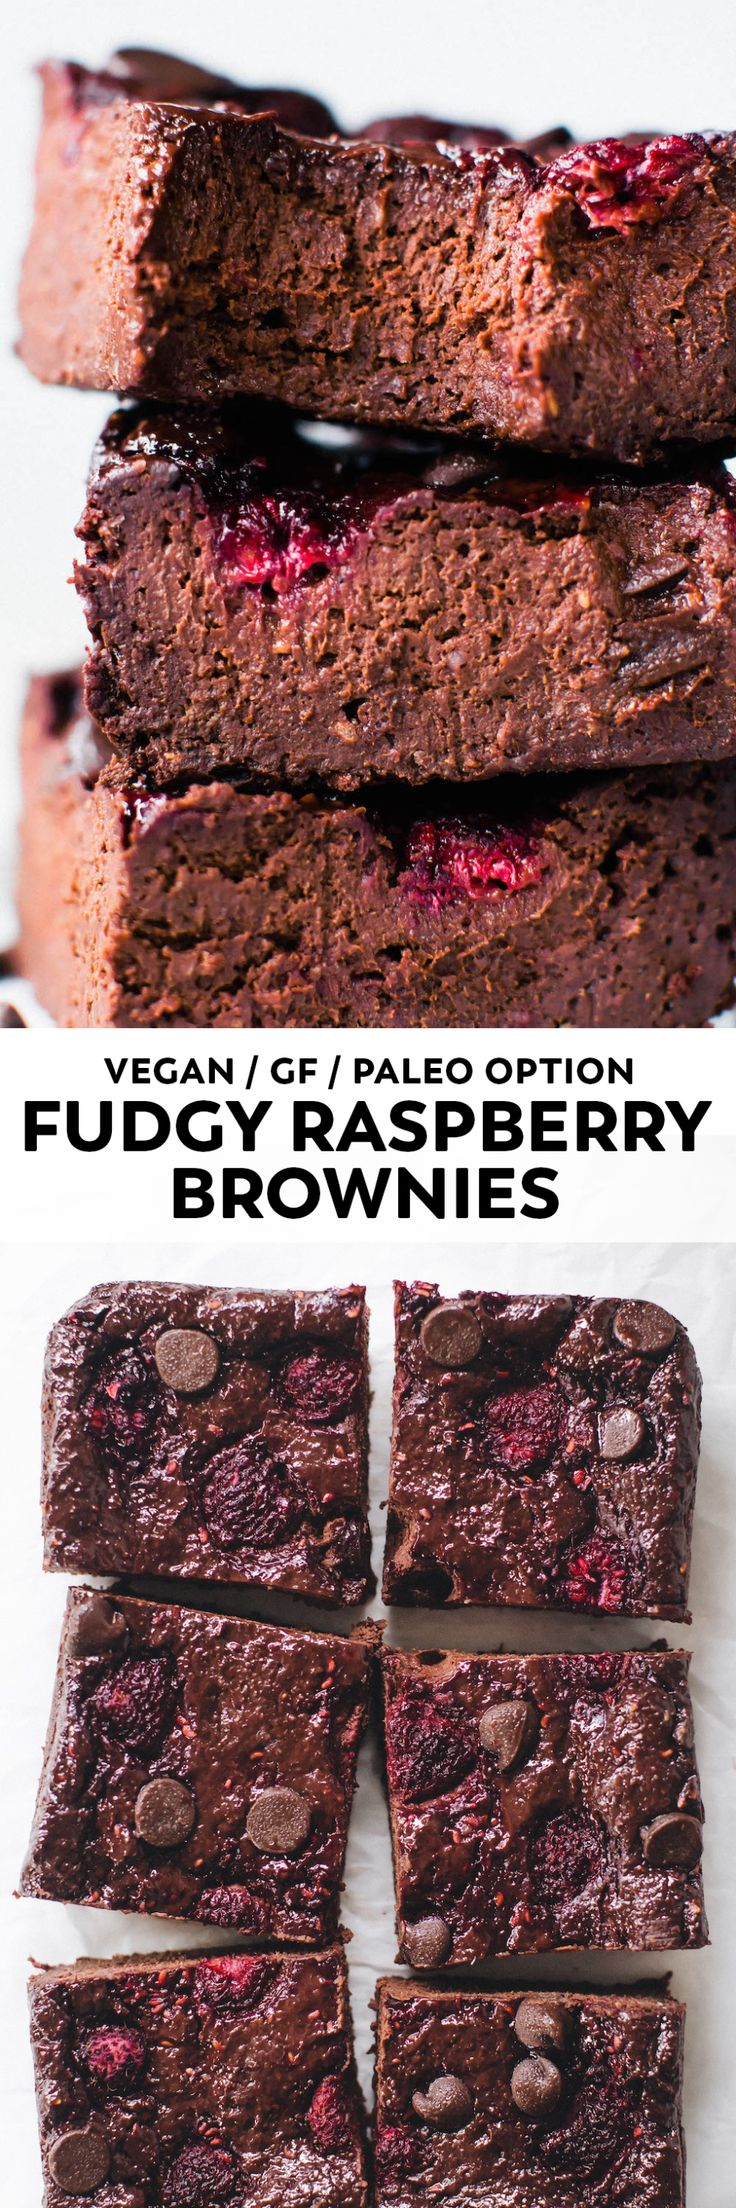 Fruity and EXTRA fudgy berry-studded brownies. These easy raspberry blender brownies taste like (healthier) chocolate heaven!